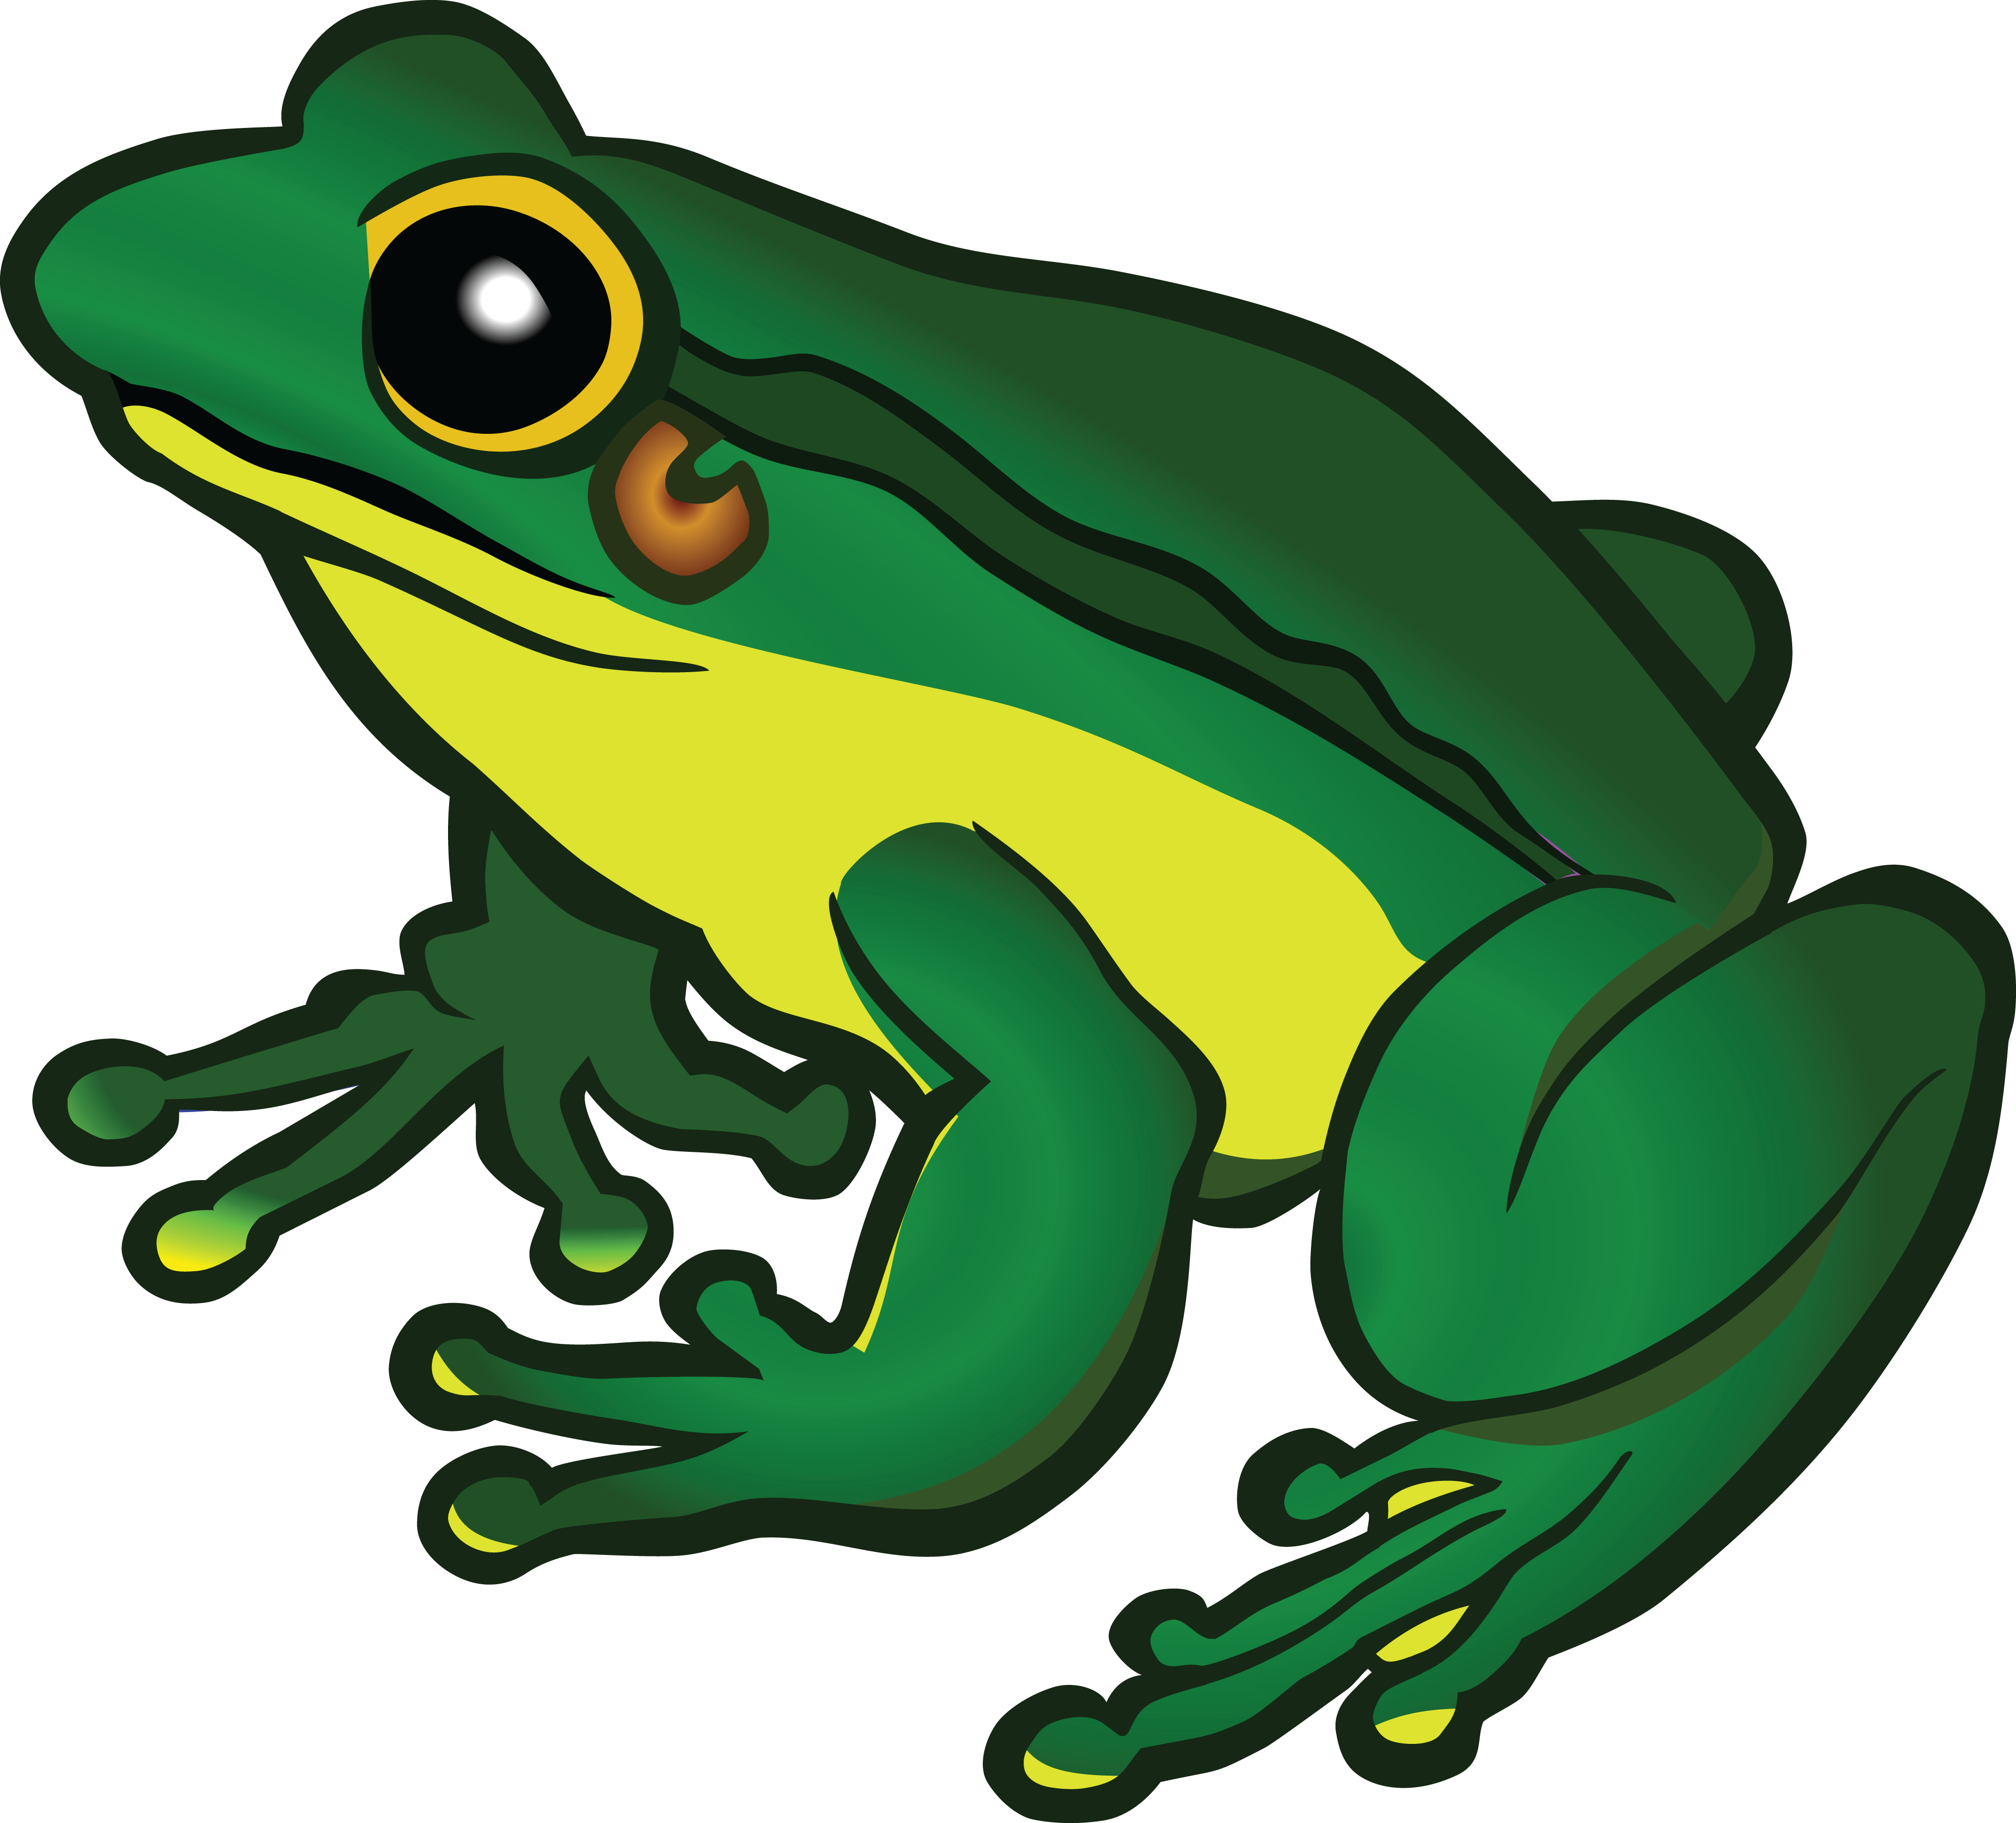 Free Clipart Of A frog   FROG CLIPART   Pinterest   Ranas